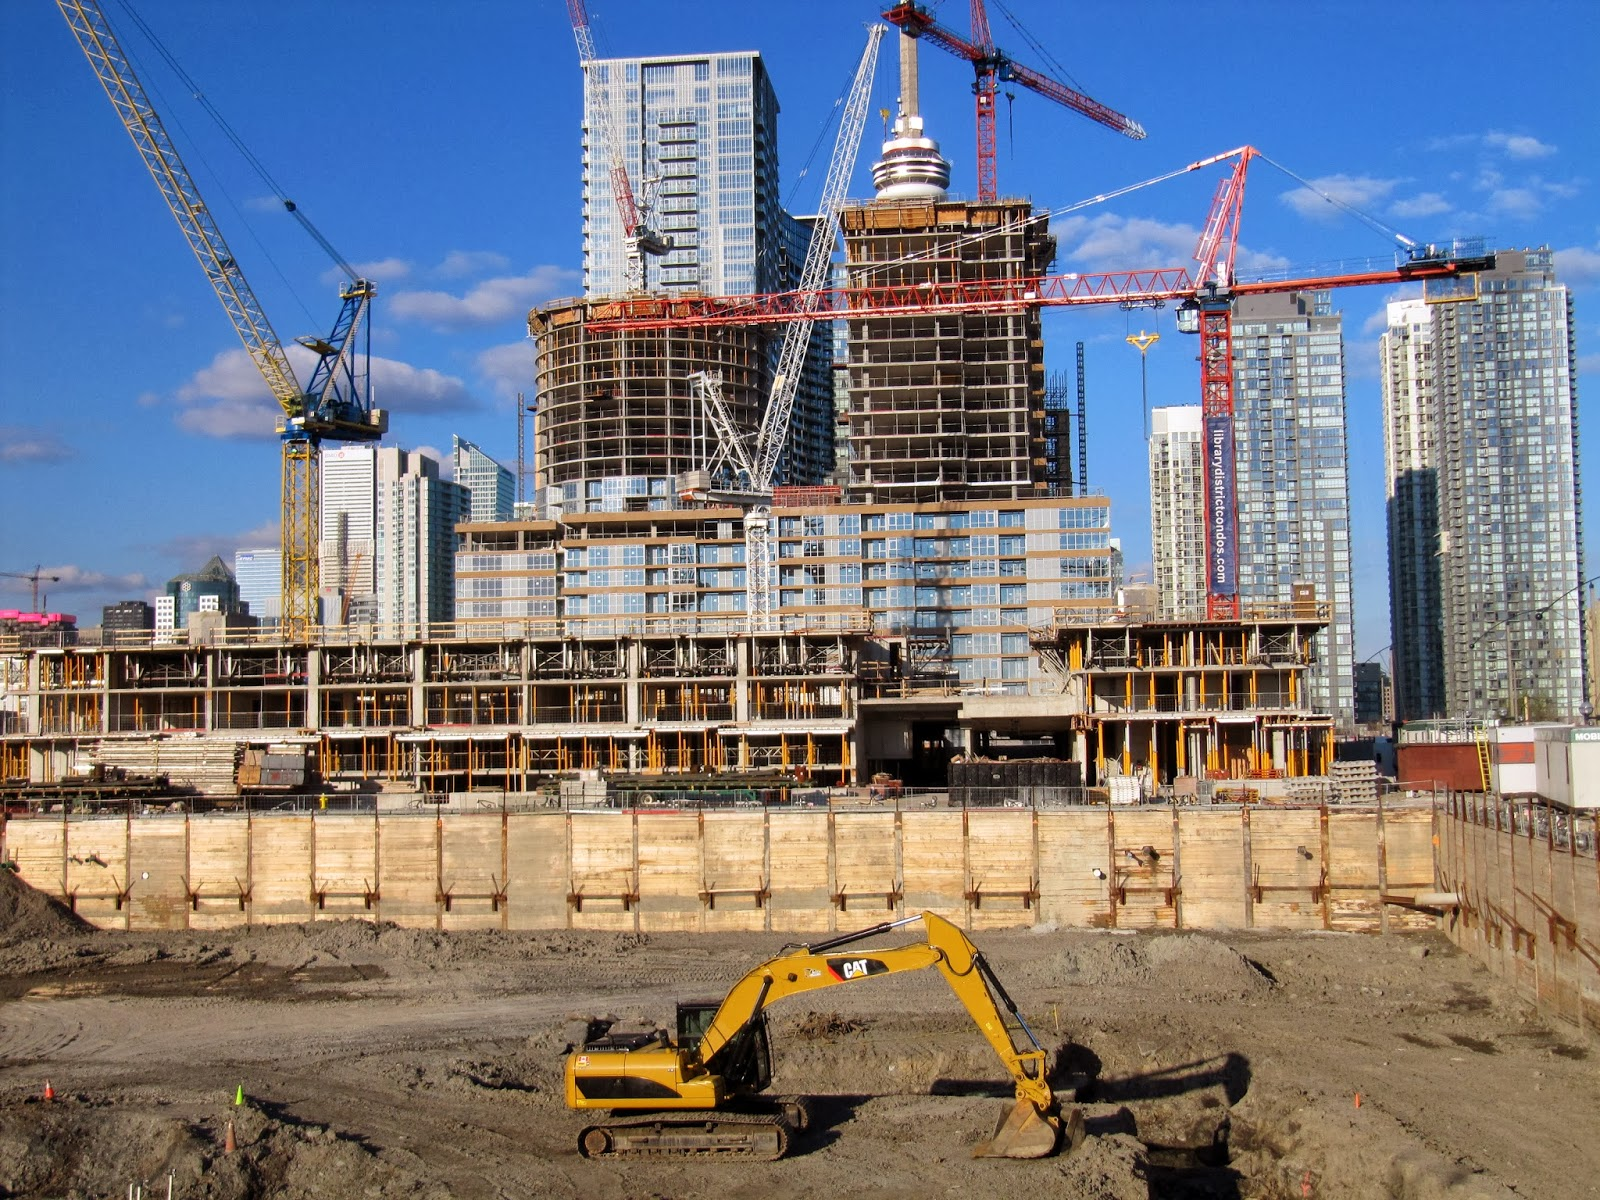 Construction site security is a key aspect of company reputation